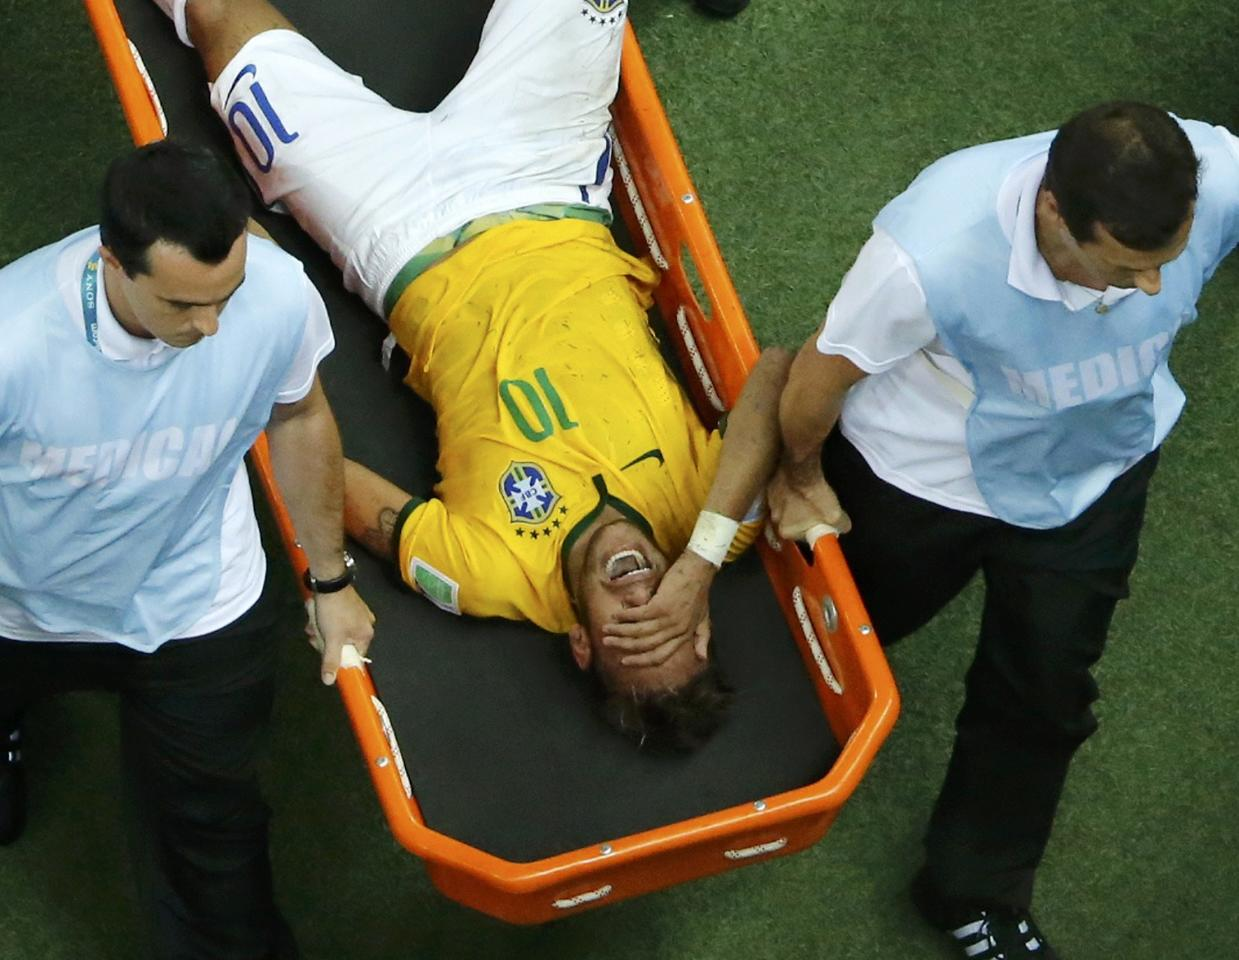 Brazil's Neymar grimaces as he is carried off the pitch after being injured during their 2014 World Cup quarter-finals against Colombia at the Castelao arena in Fortaleza July 4, 2014. REUTERS/Fabrizio Bensch (BRAZIL - Tags: SOCCER SPORT WORLD CUP TPX IMAGES OF THE DAY) TOPCUP